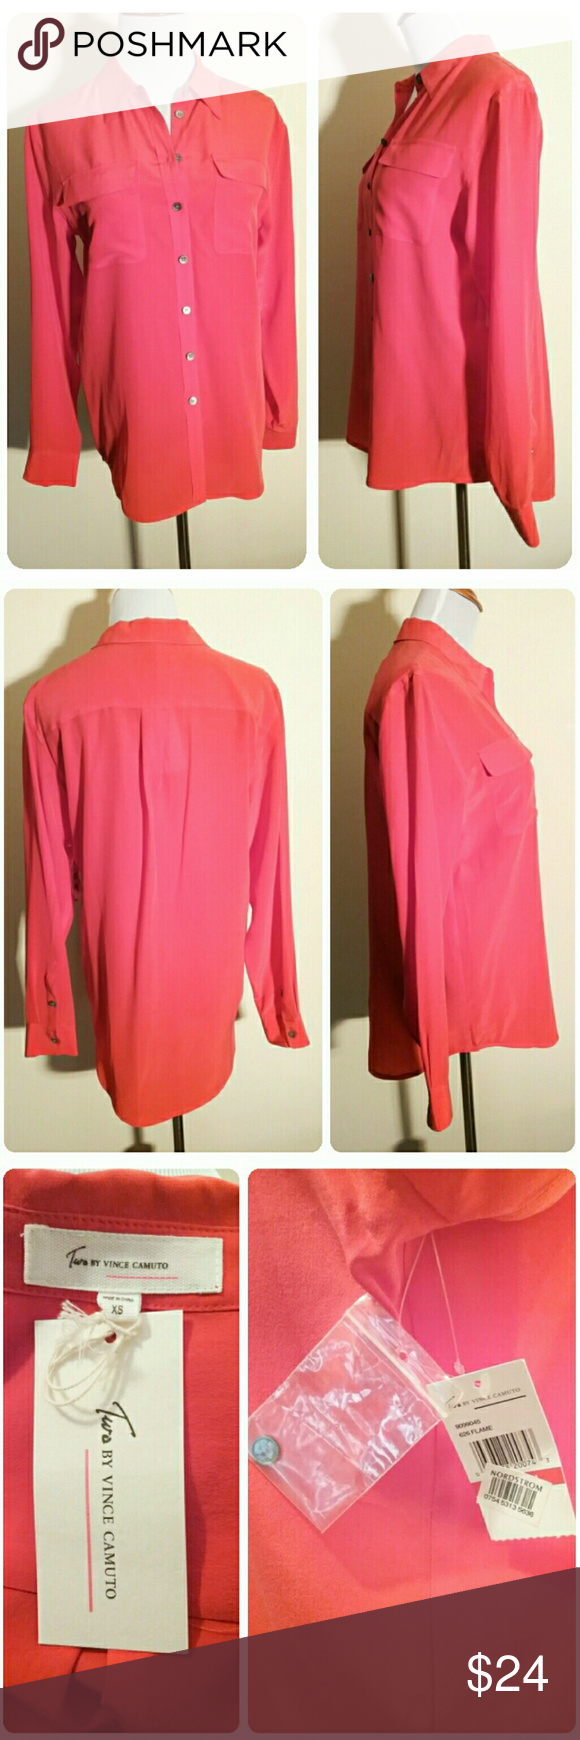 "HOLD❤NWT Two by Vince Camuto Flame Red Blouse This silky button down blouse, in tunic length, is just gorgeous in tomato red. There are two front pockets, logo buttons, and an extra button included.  It is oversized, would fit a small, and may fit a medium too. Please see the measurements.  The fabric tag is not present.   The measurements across are: bust 19 1/2"", waist  19 1/2"". The length is 26 1/2"". The back length is 28 3/4"". The arm length is 23 1/2"".  🛍 Bundle and Save More!! Two by…"